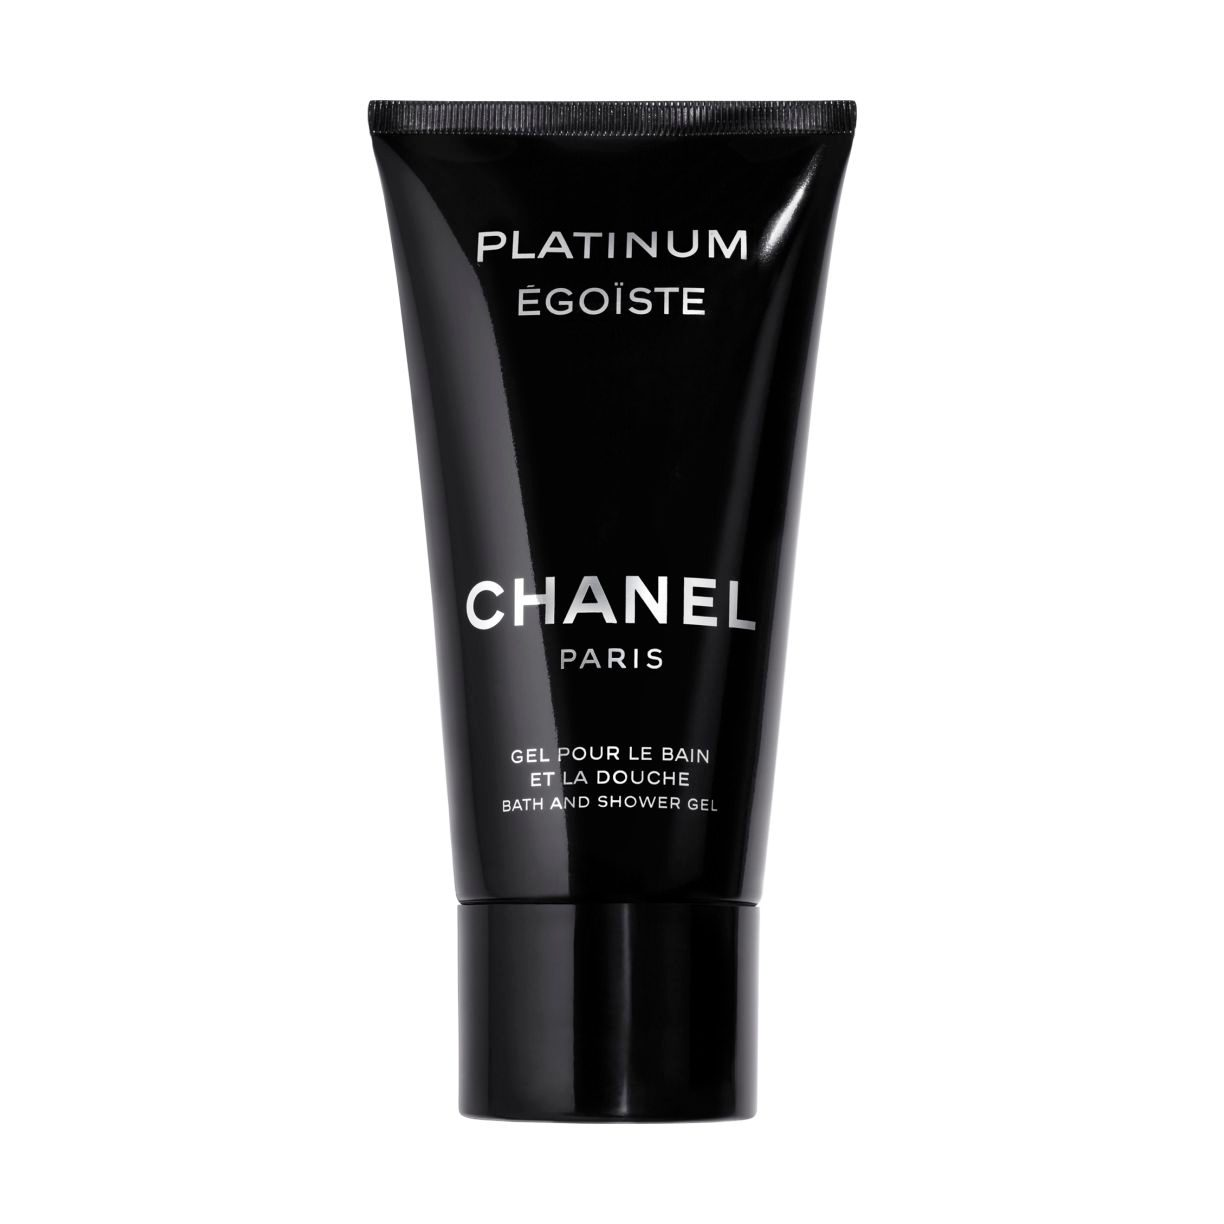 PLATINUM ÉGOÏSTE SHOWER GEL - เจลอาบน้ำ 150ml